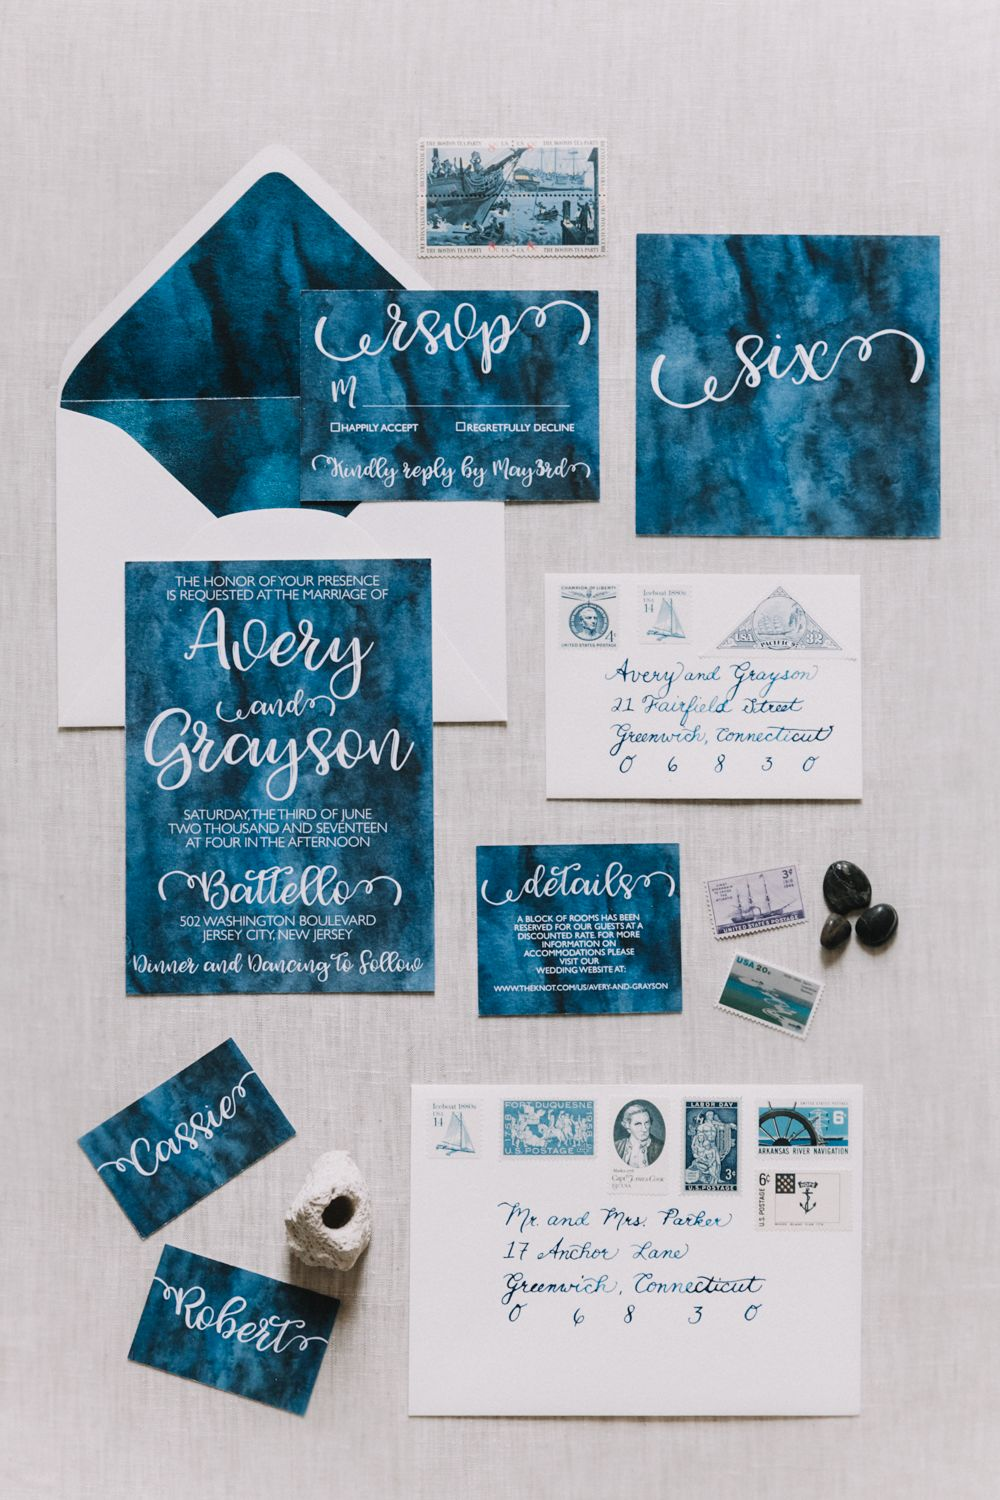 avery address labels wedding invitations%0A Elevated Nautical themed wedding invitations  deep navy watercolor with  contrasting white envelopes  navy calligraphy